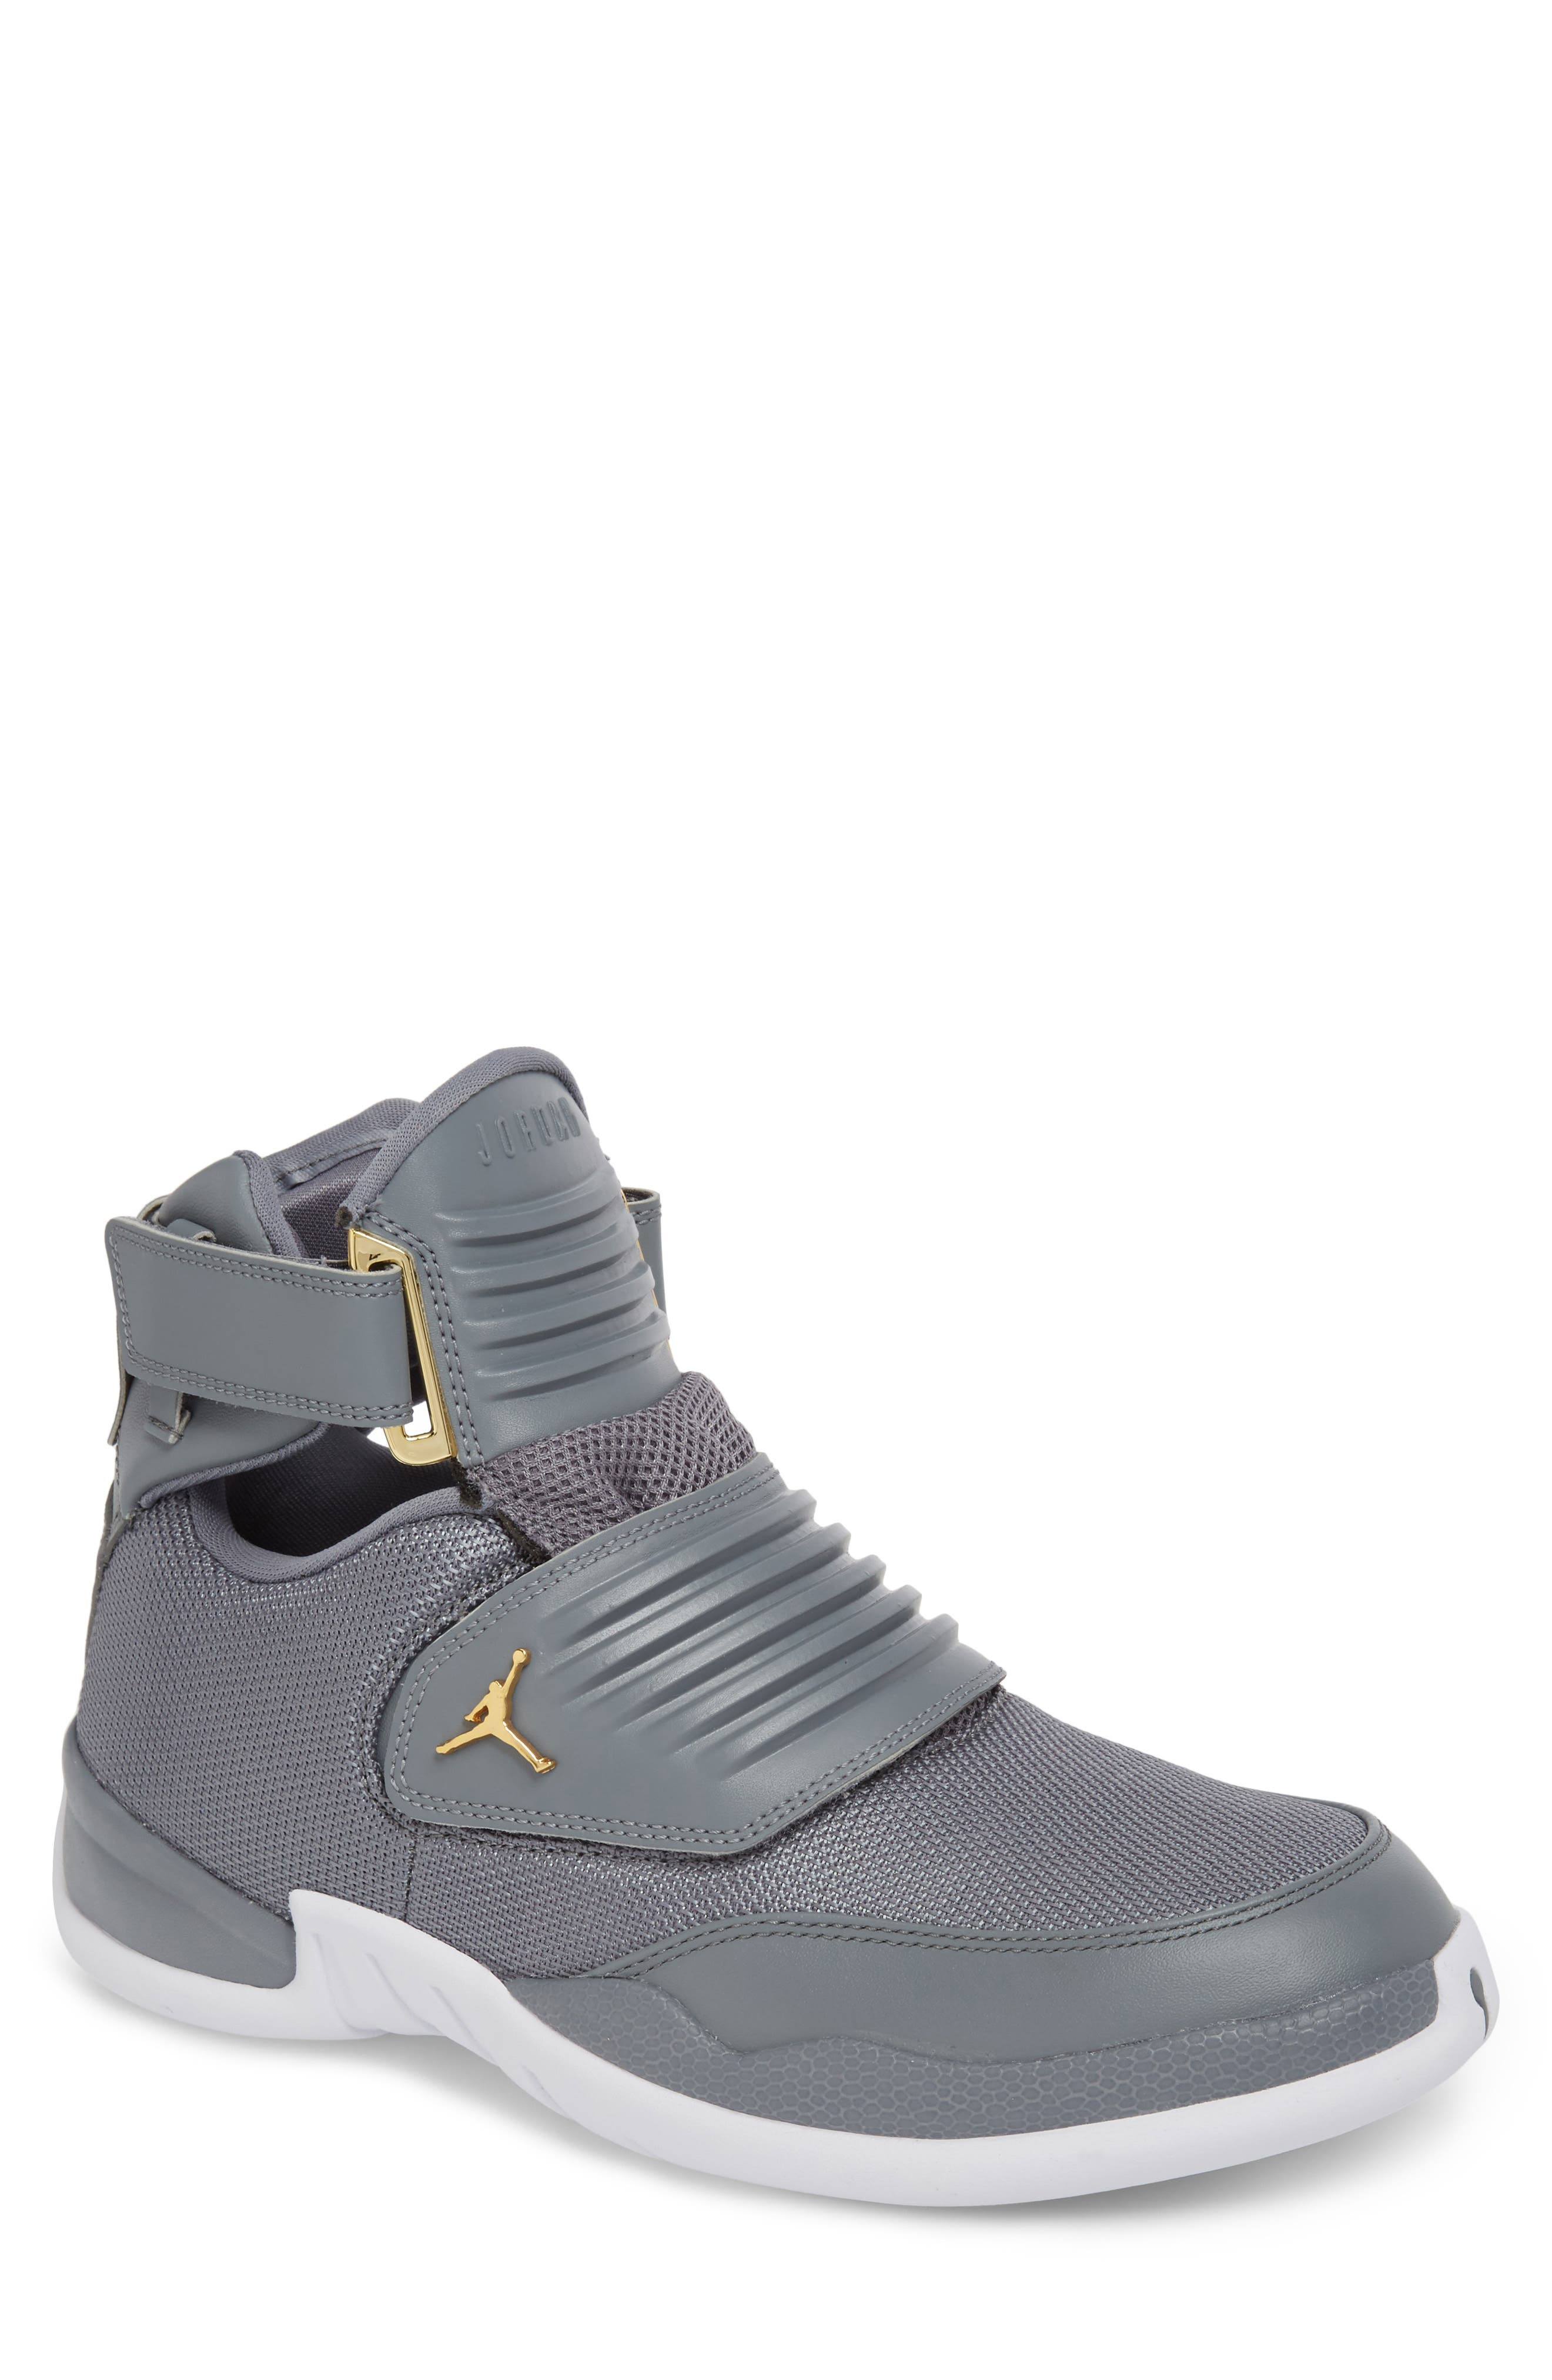 Main Image - Nike Jordan Generation High Top Sneaker (Men)